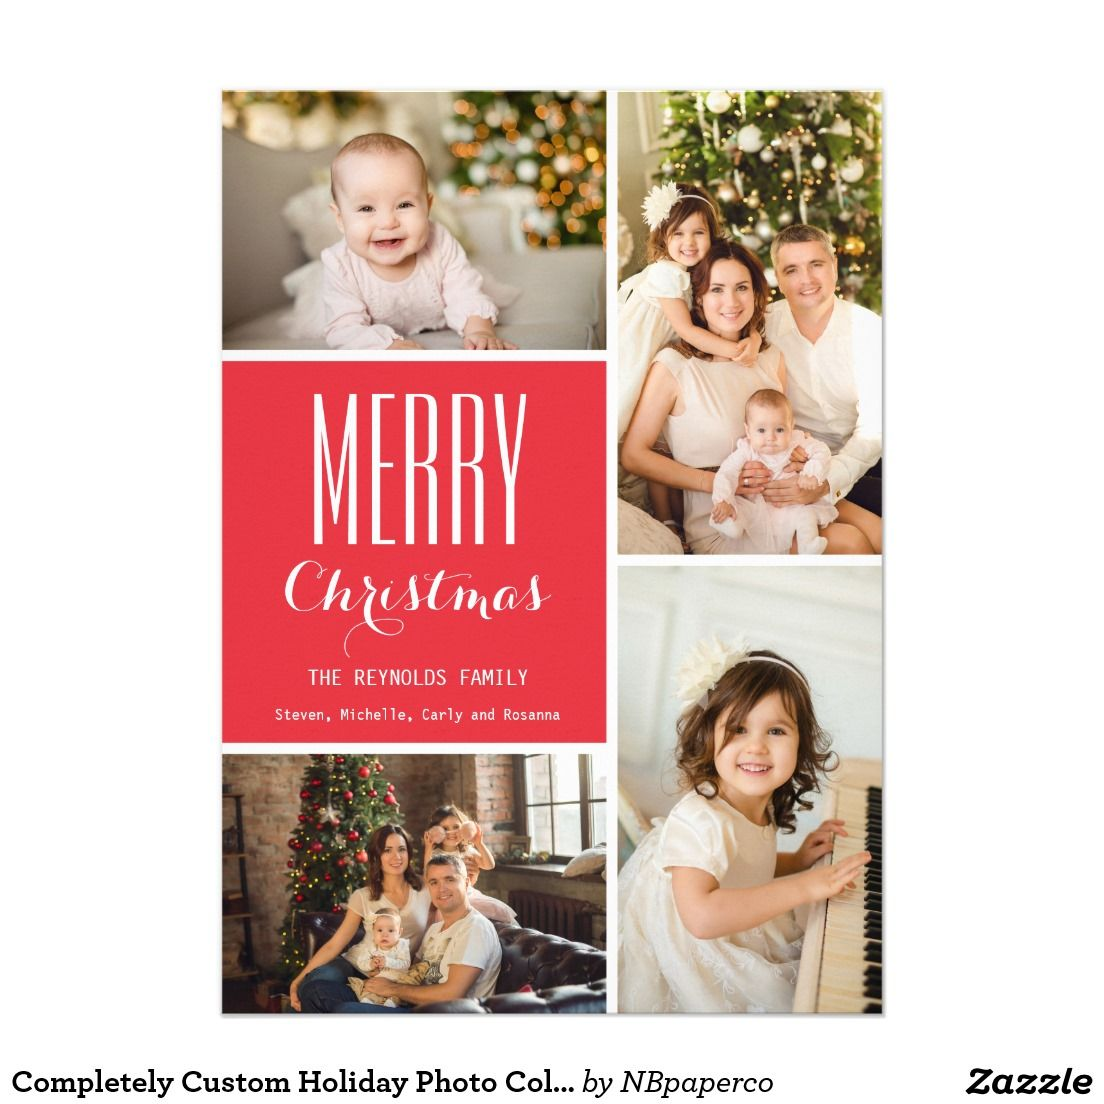 Send Holiday Cheer This Season With A Family Photo Collage These